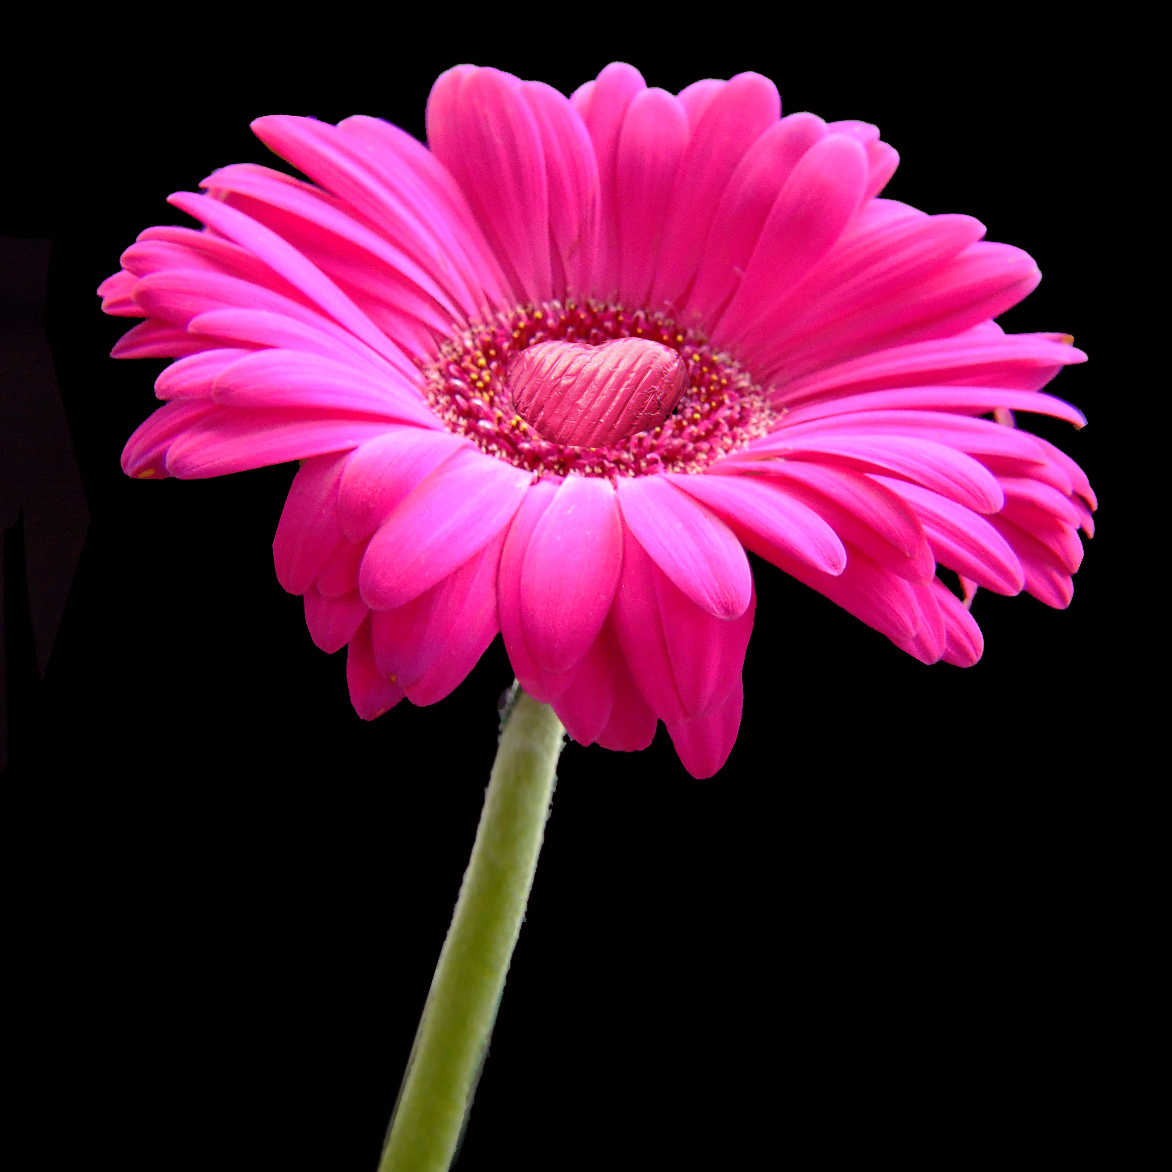 Chocolate Heart On A Pink Gerbera Daisy Flower For You Square A